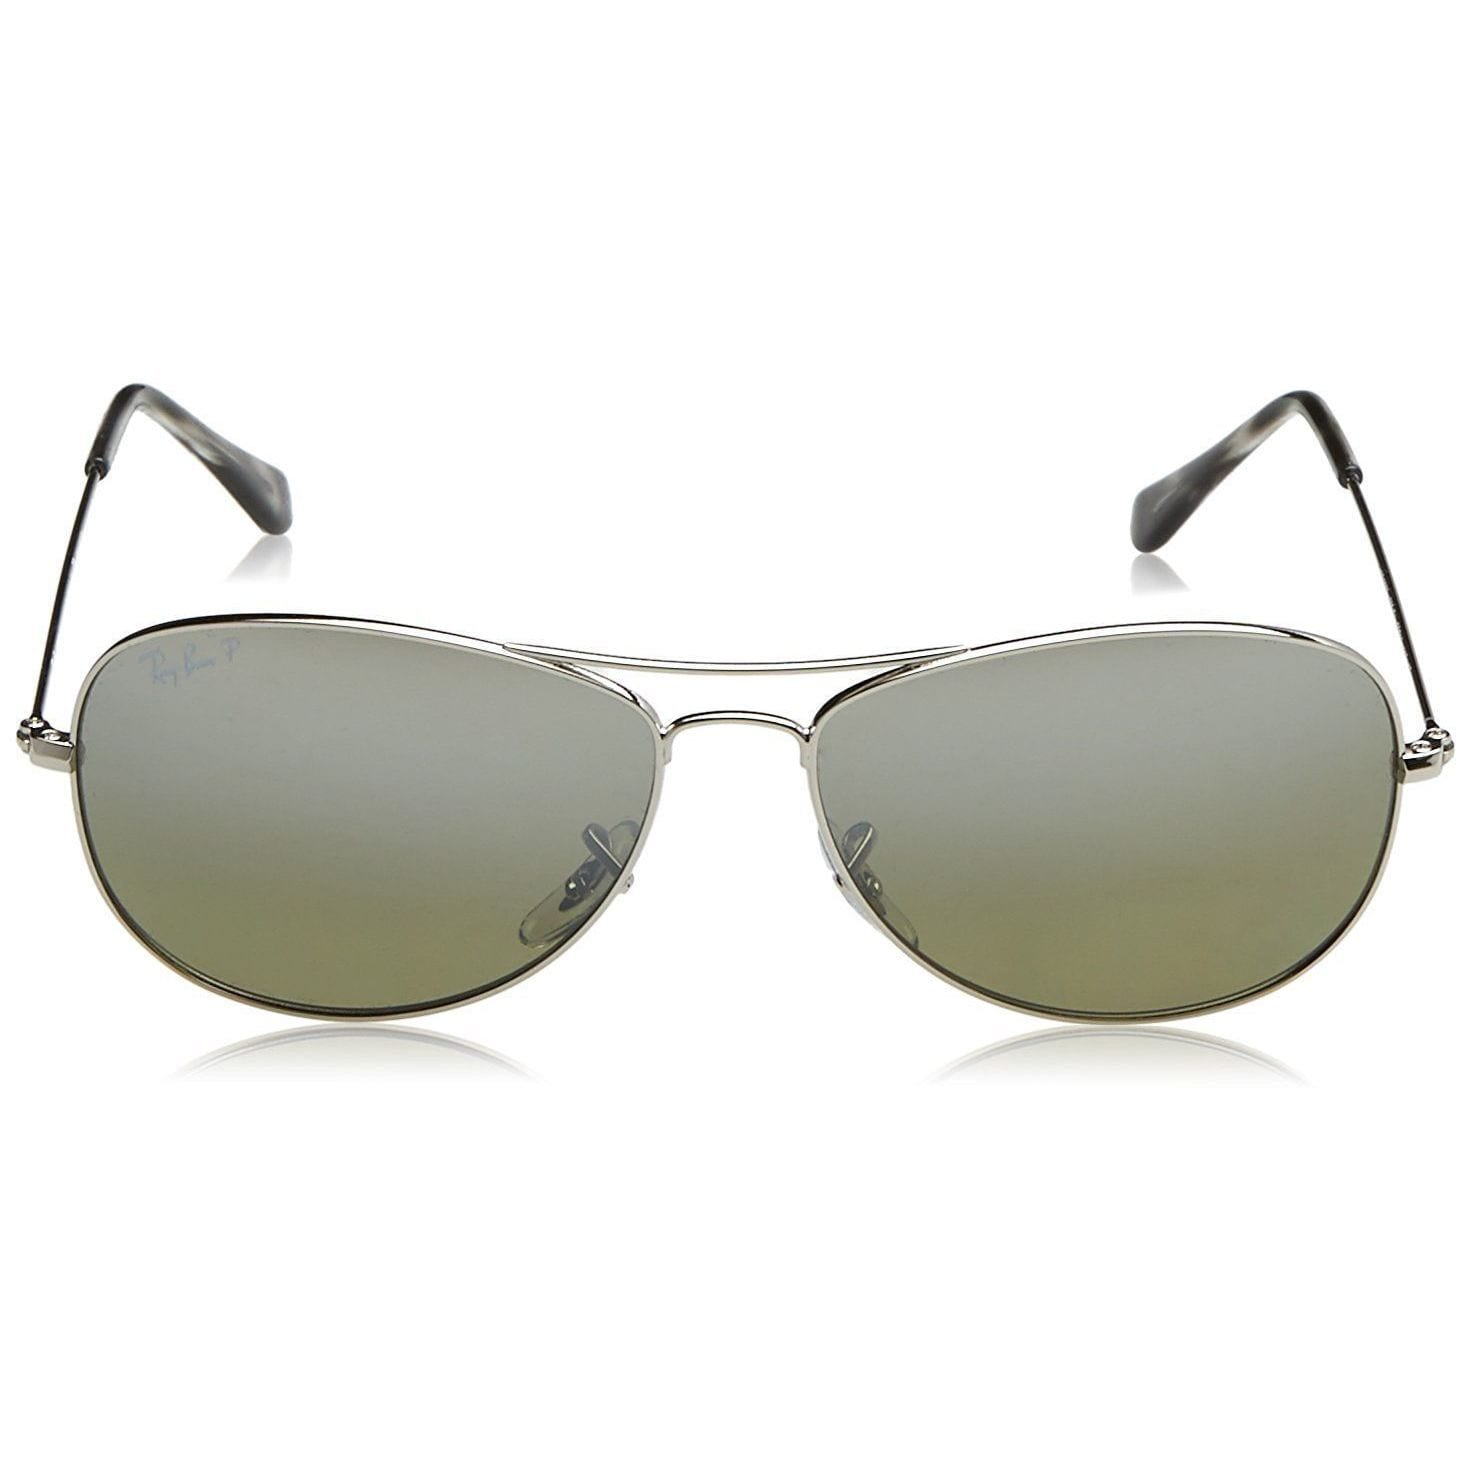 e0ae84d0cd Shop Ray-Ban Chromance RB3562 003 5J Men s Silver Frame Polarized Silver  Mirror 59mm Lens Sunglasses - Free Shipping Today - Overstock - 15287786